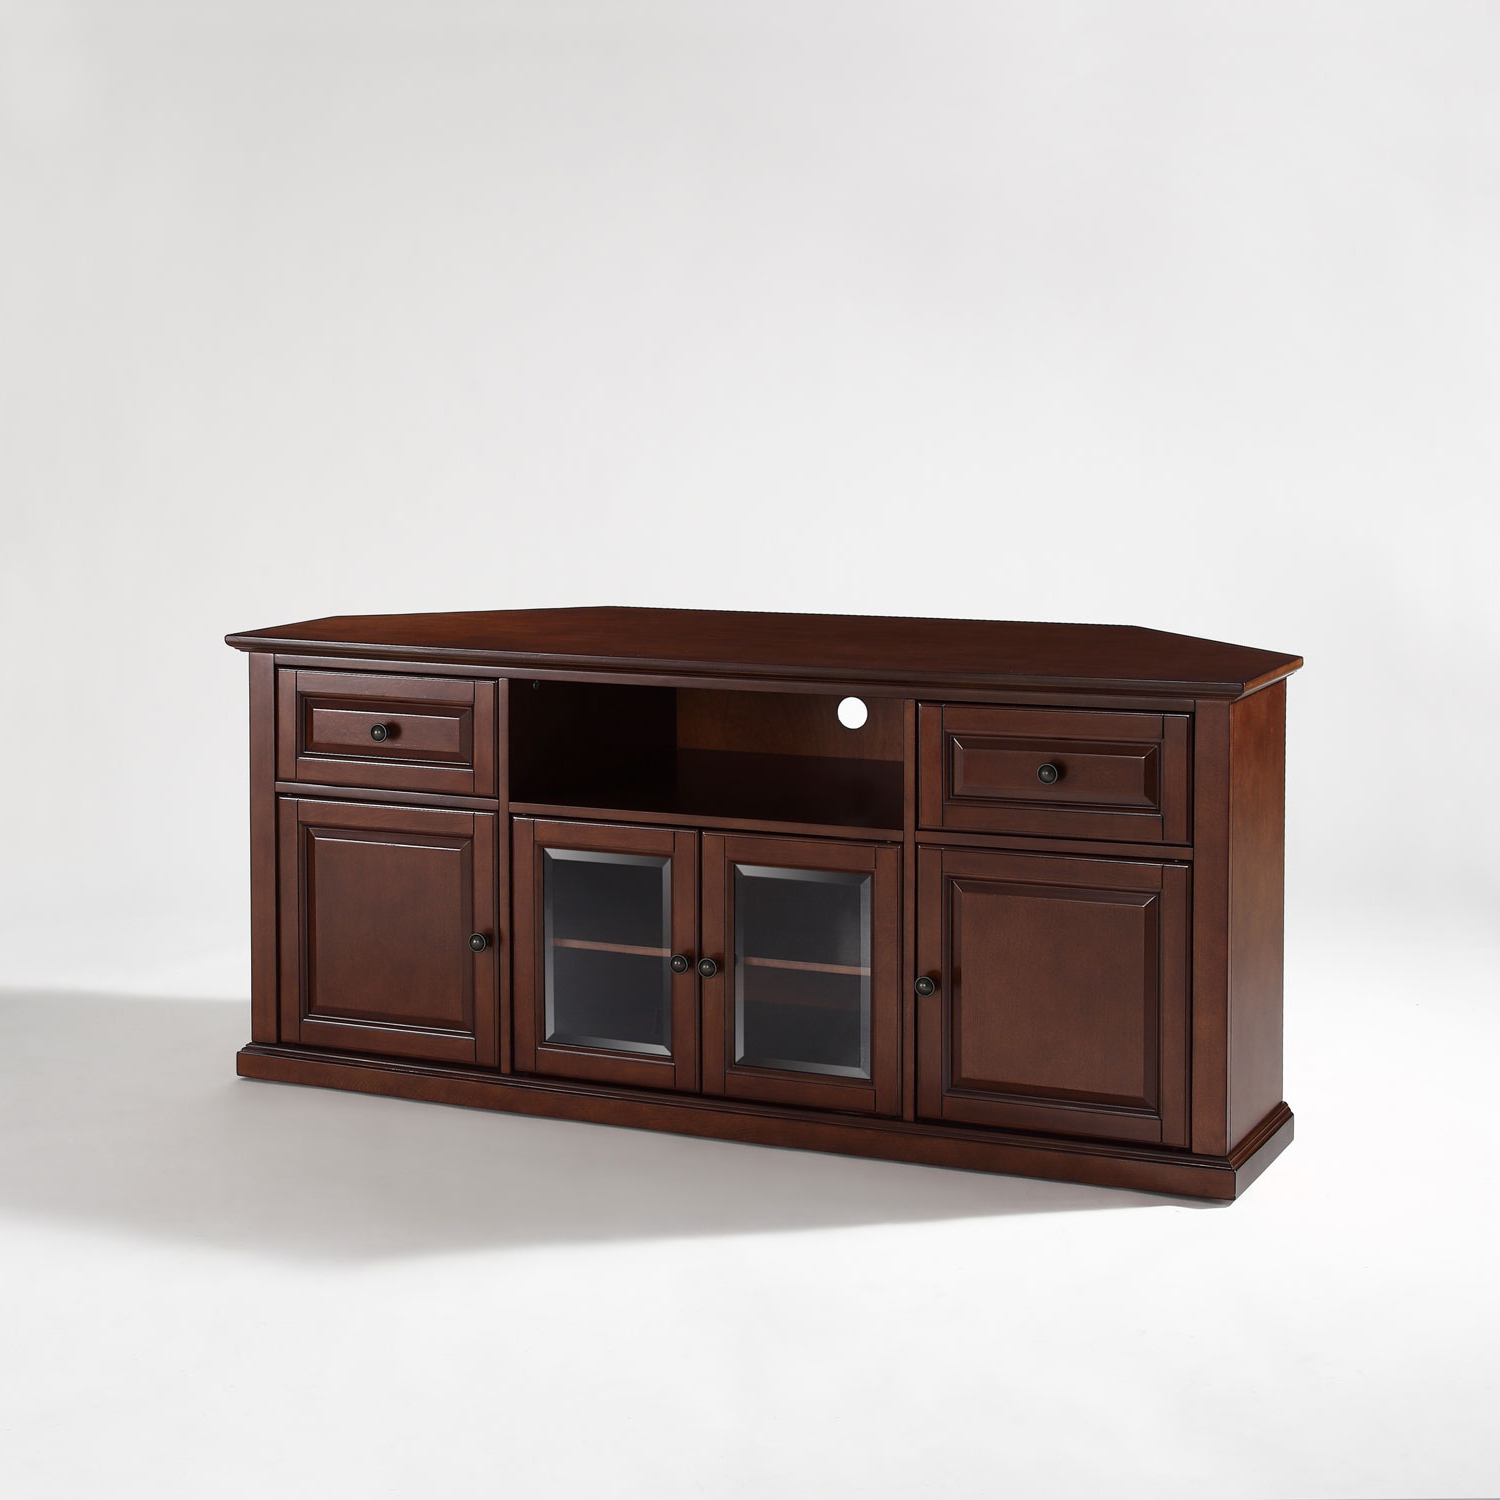 Most Popular Corner 60 Inch Tv Stands Regarding Corner Tv Stand In Crosley Furniture Inch Vintage Mahogany Plans (View 2 of 20)